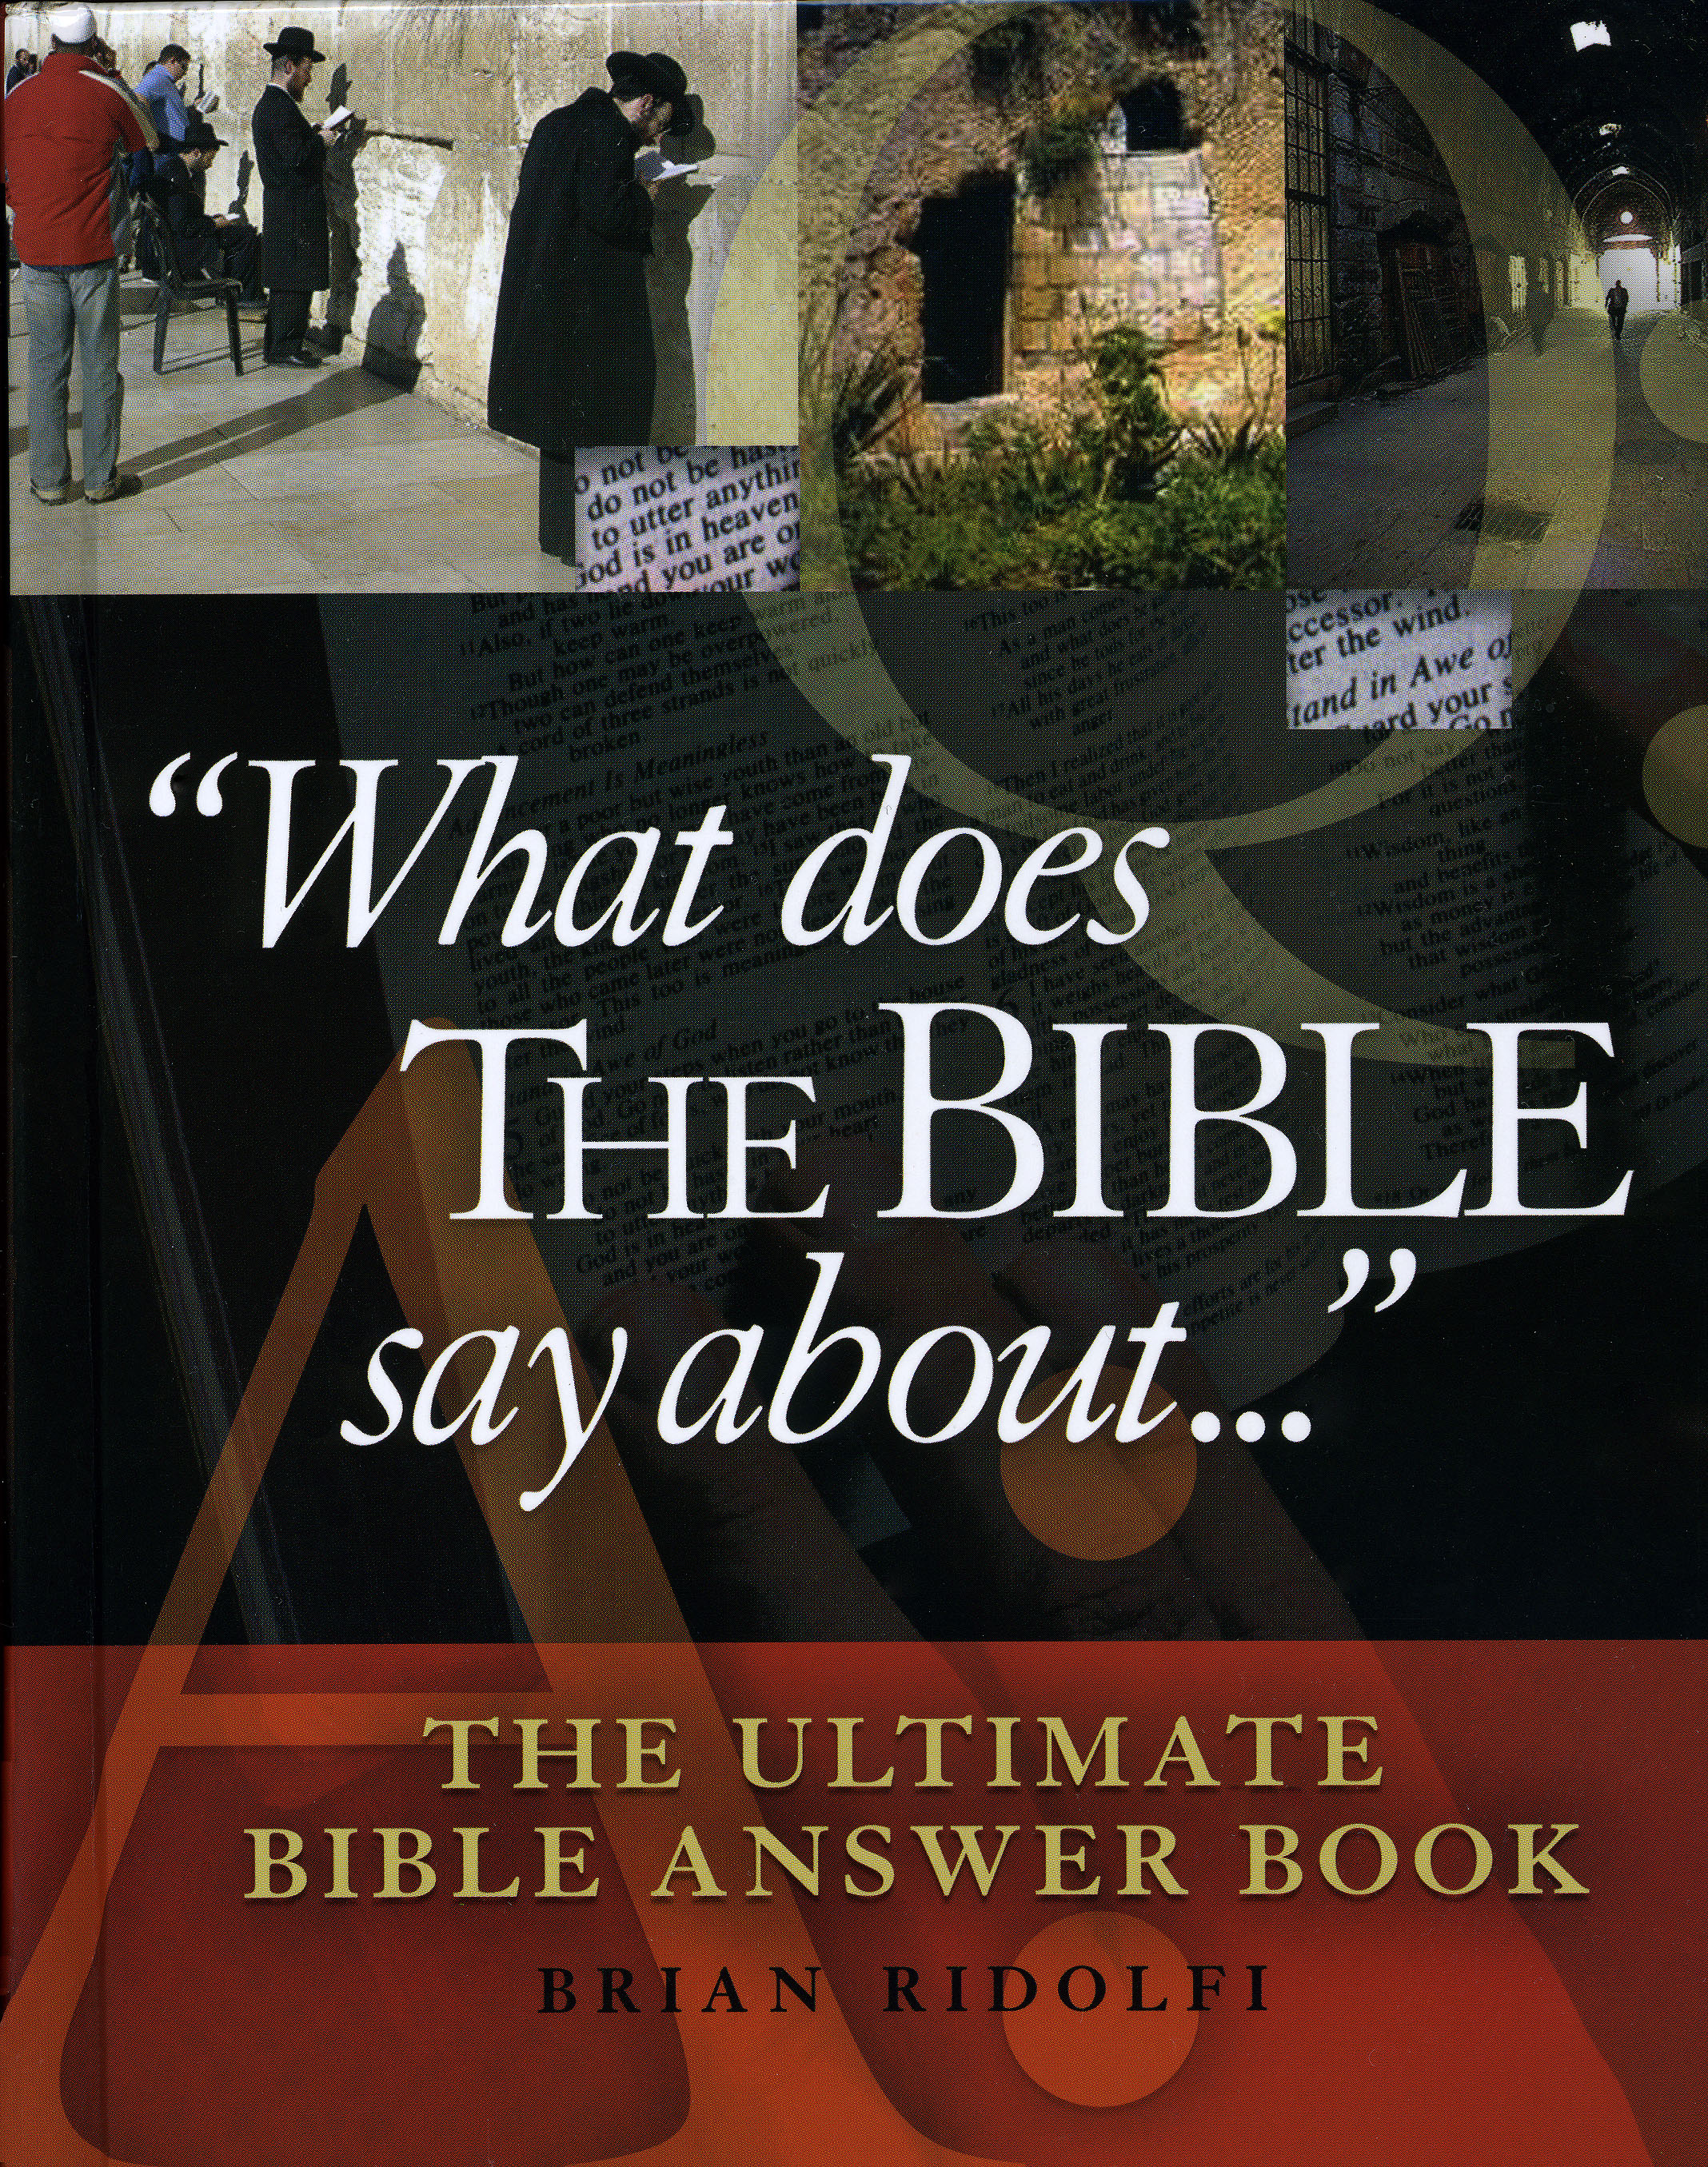 What Does The Bible Say About - Brian E. Ridolfi